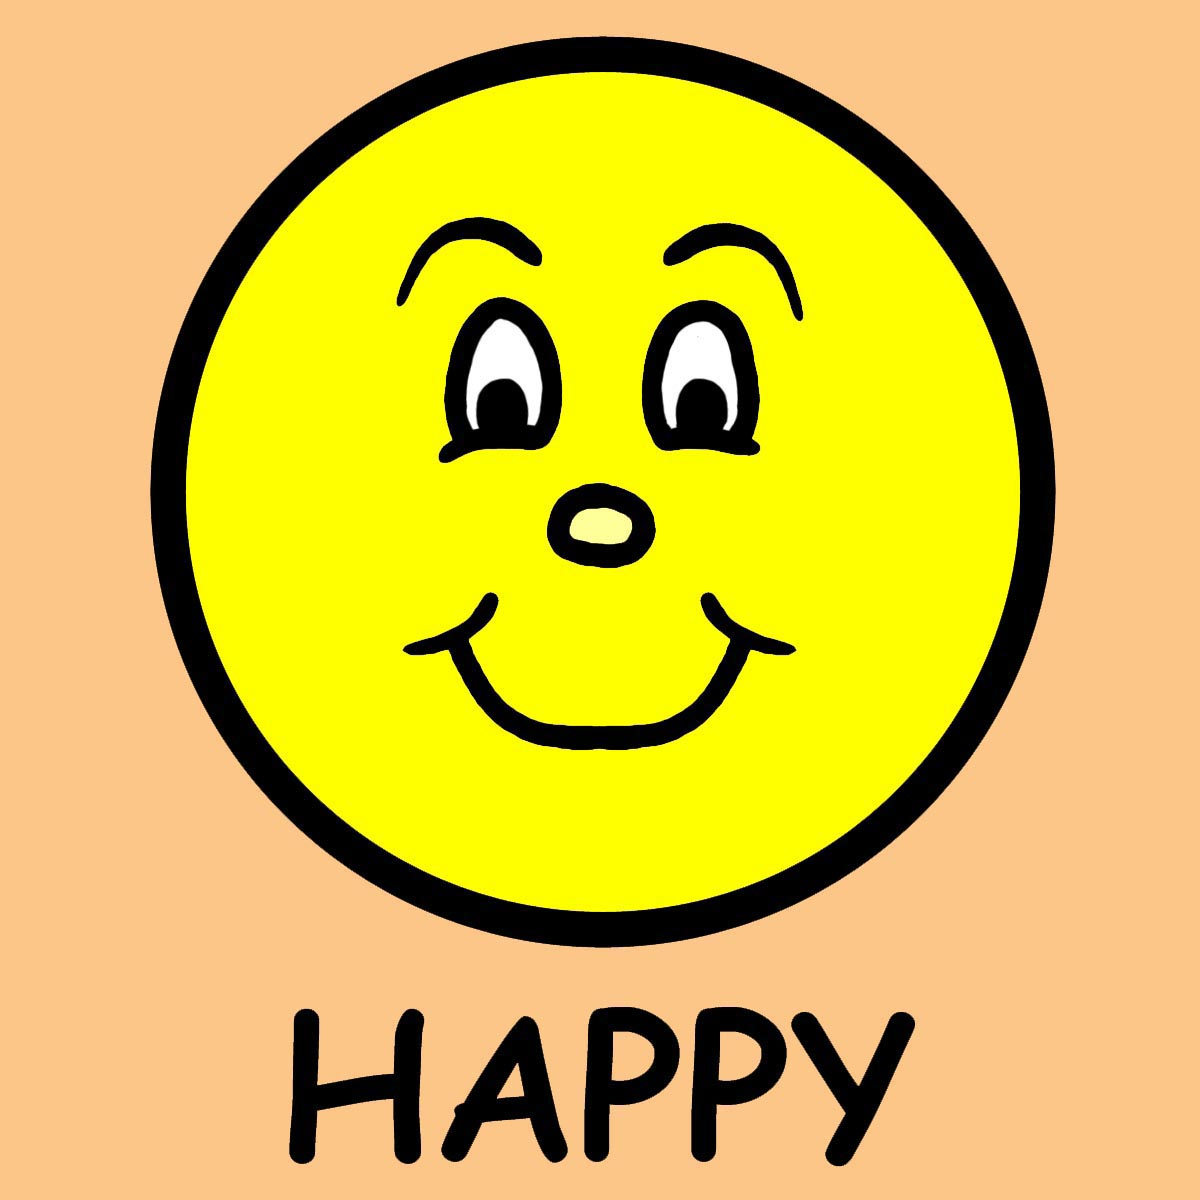 1200x1200 Free Happy Face Clipart Image